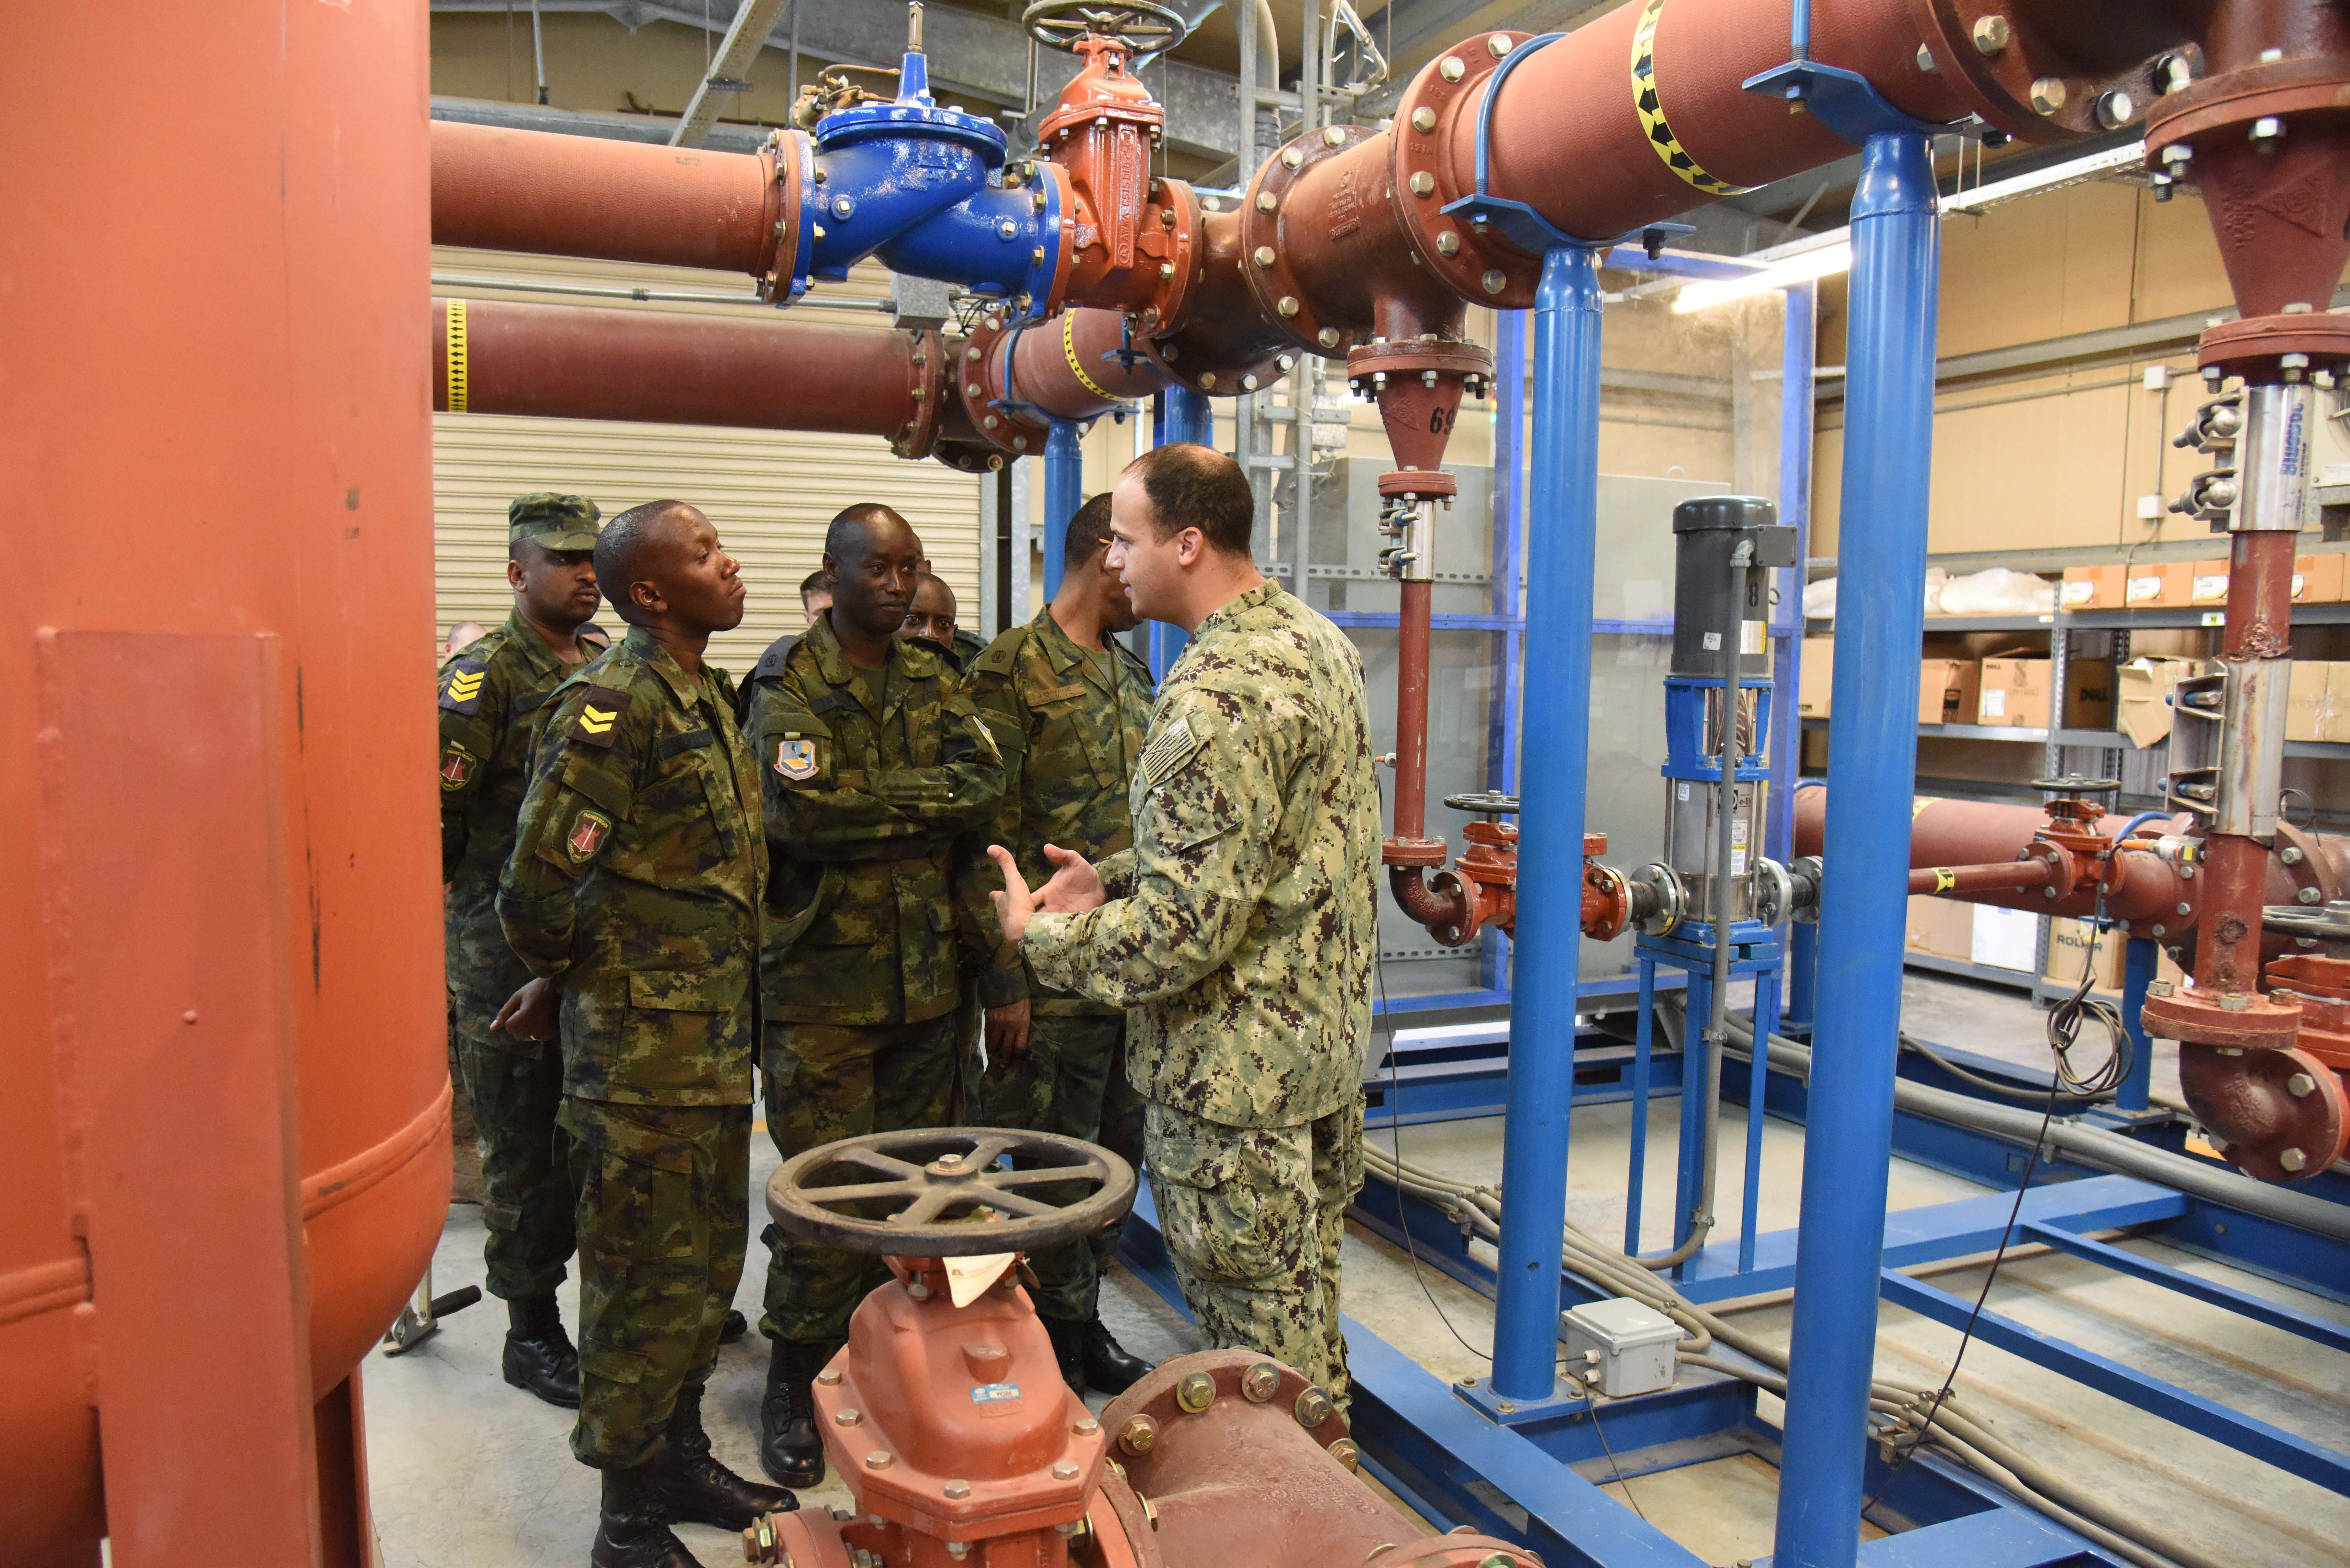 U.S. Navy Lt. Raul Cuevas, Camp Lemonnier Public Works Department civil engineer corps officer, explains the inner workings of the reverse osmosis water purification unit to Rwanda Defence Force engineers at Camp Lemonnier, Djibouti, Feb. 23, 2016. The ROWPU provides clean, drinkable water to the residents of Camp Lemonnier. (U.S. Air Force photo by Staff Sgt. Victoria Sneed)